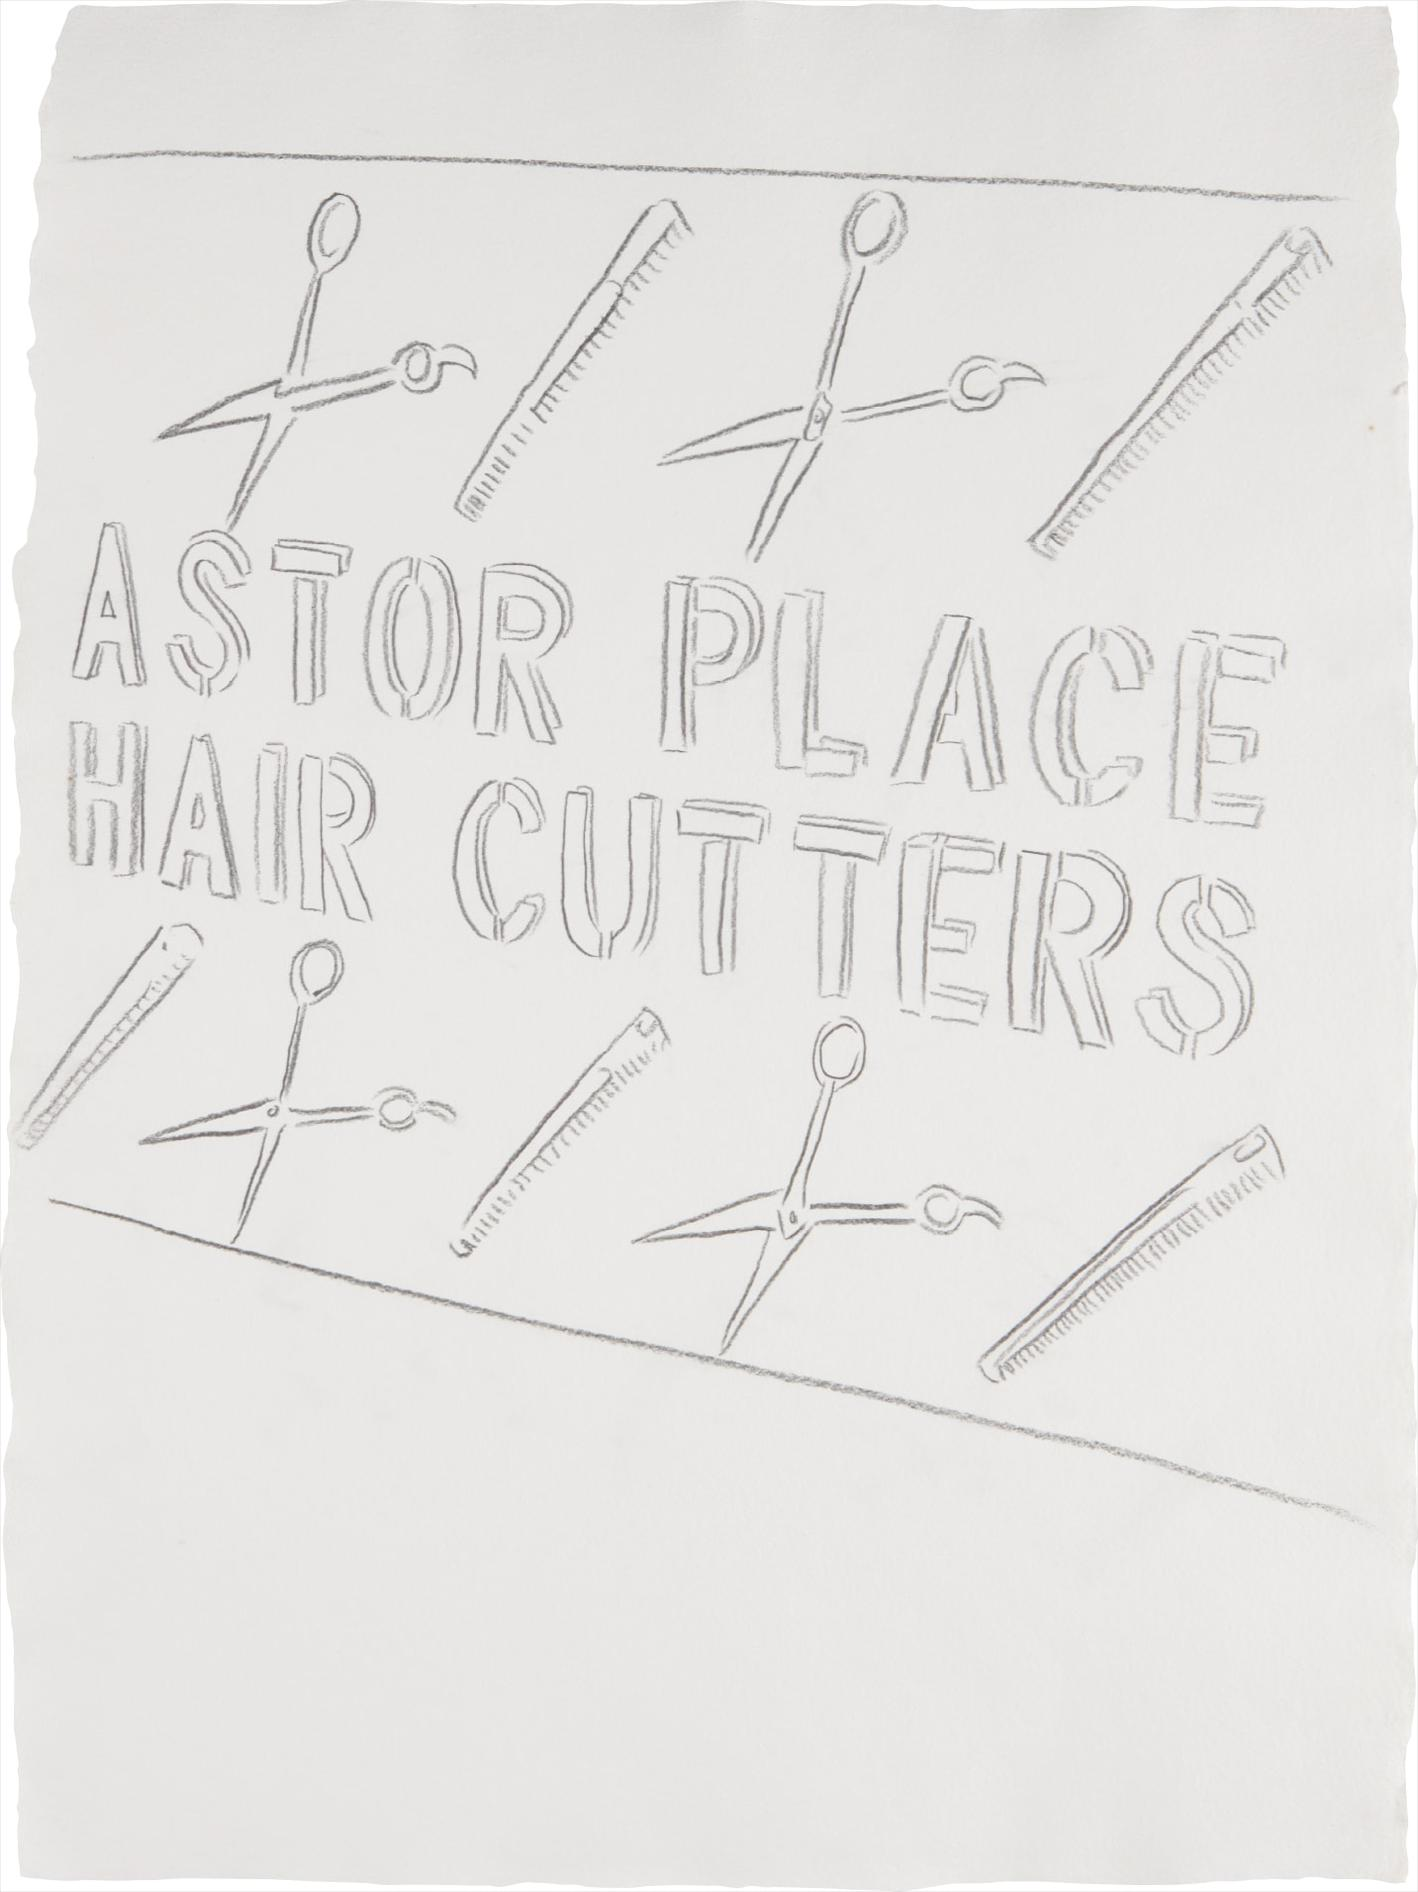 Andy Warhol-Astor Place Haircutters-1984